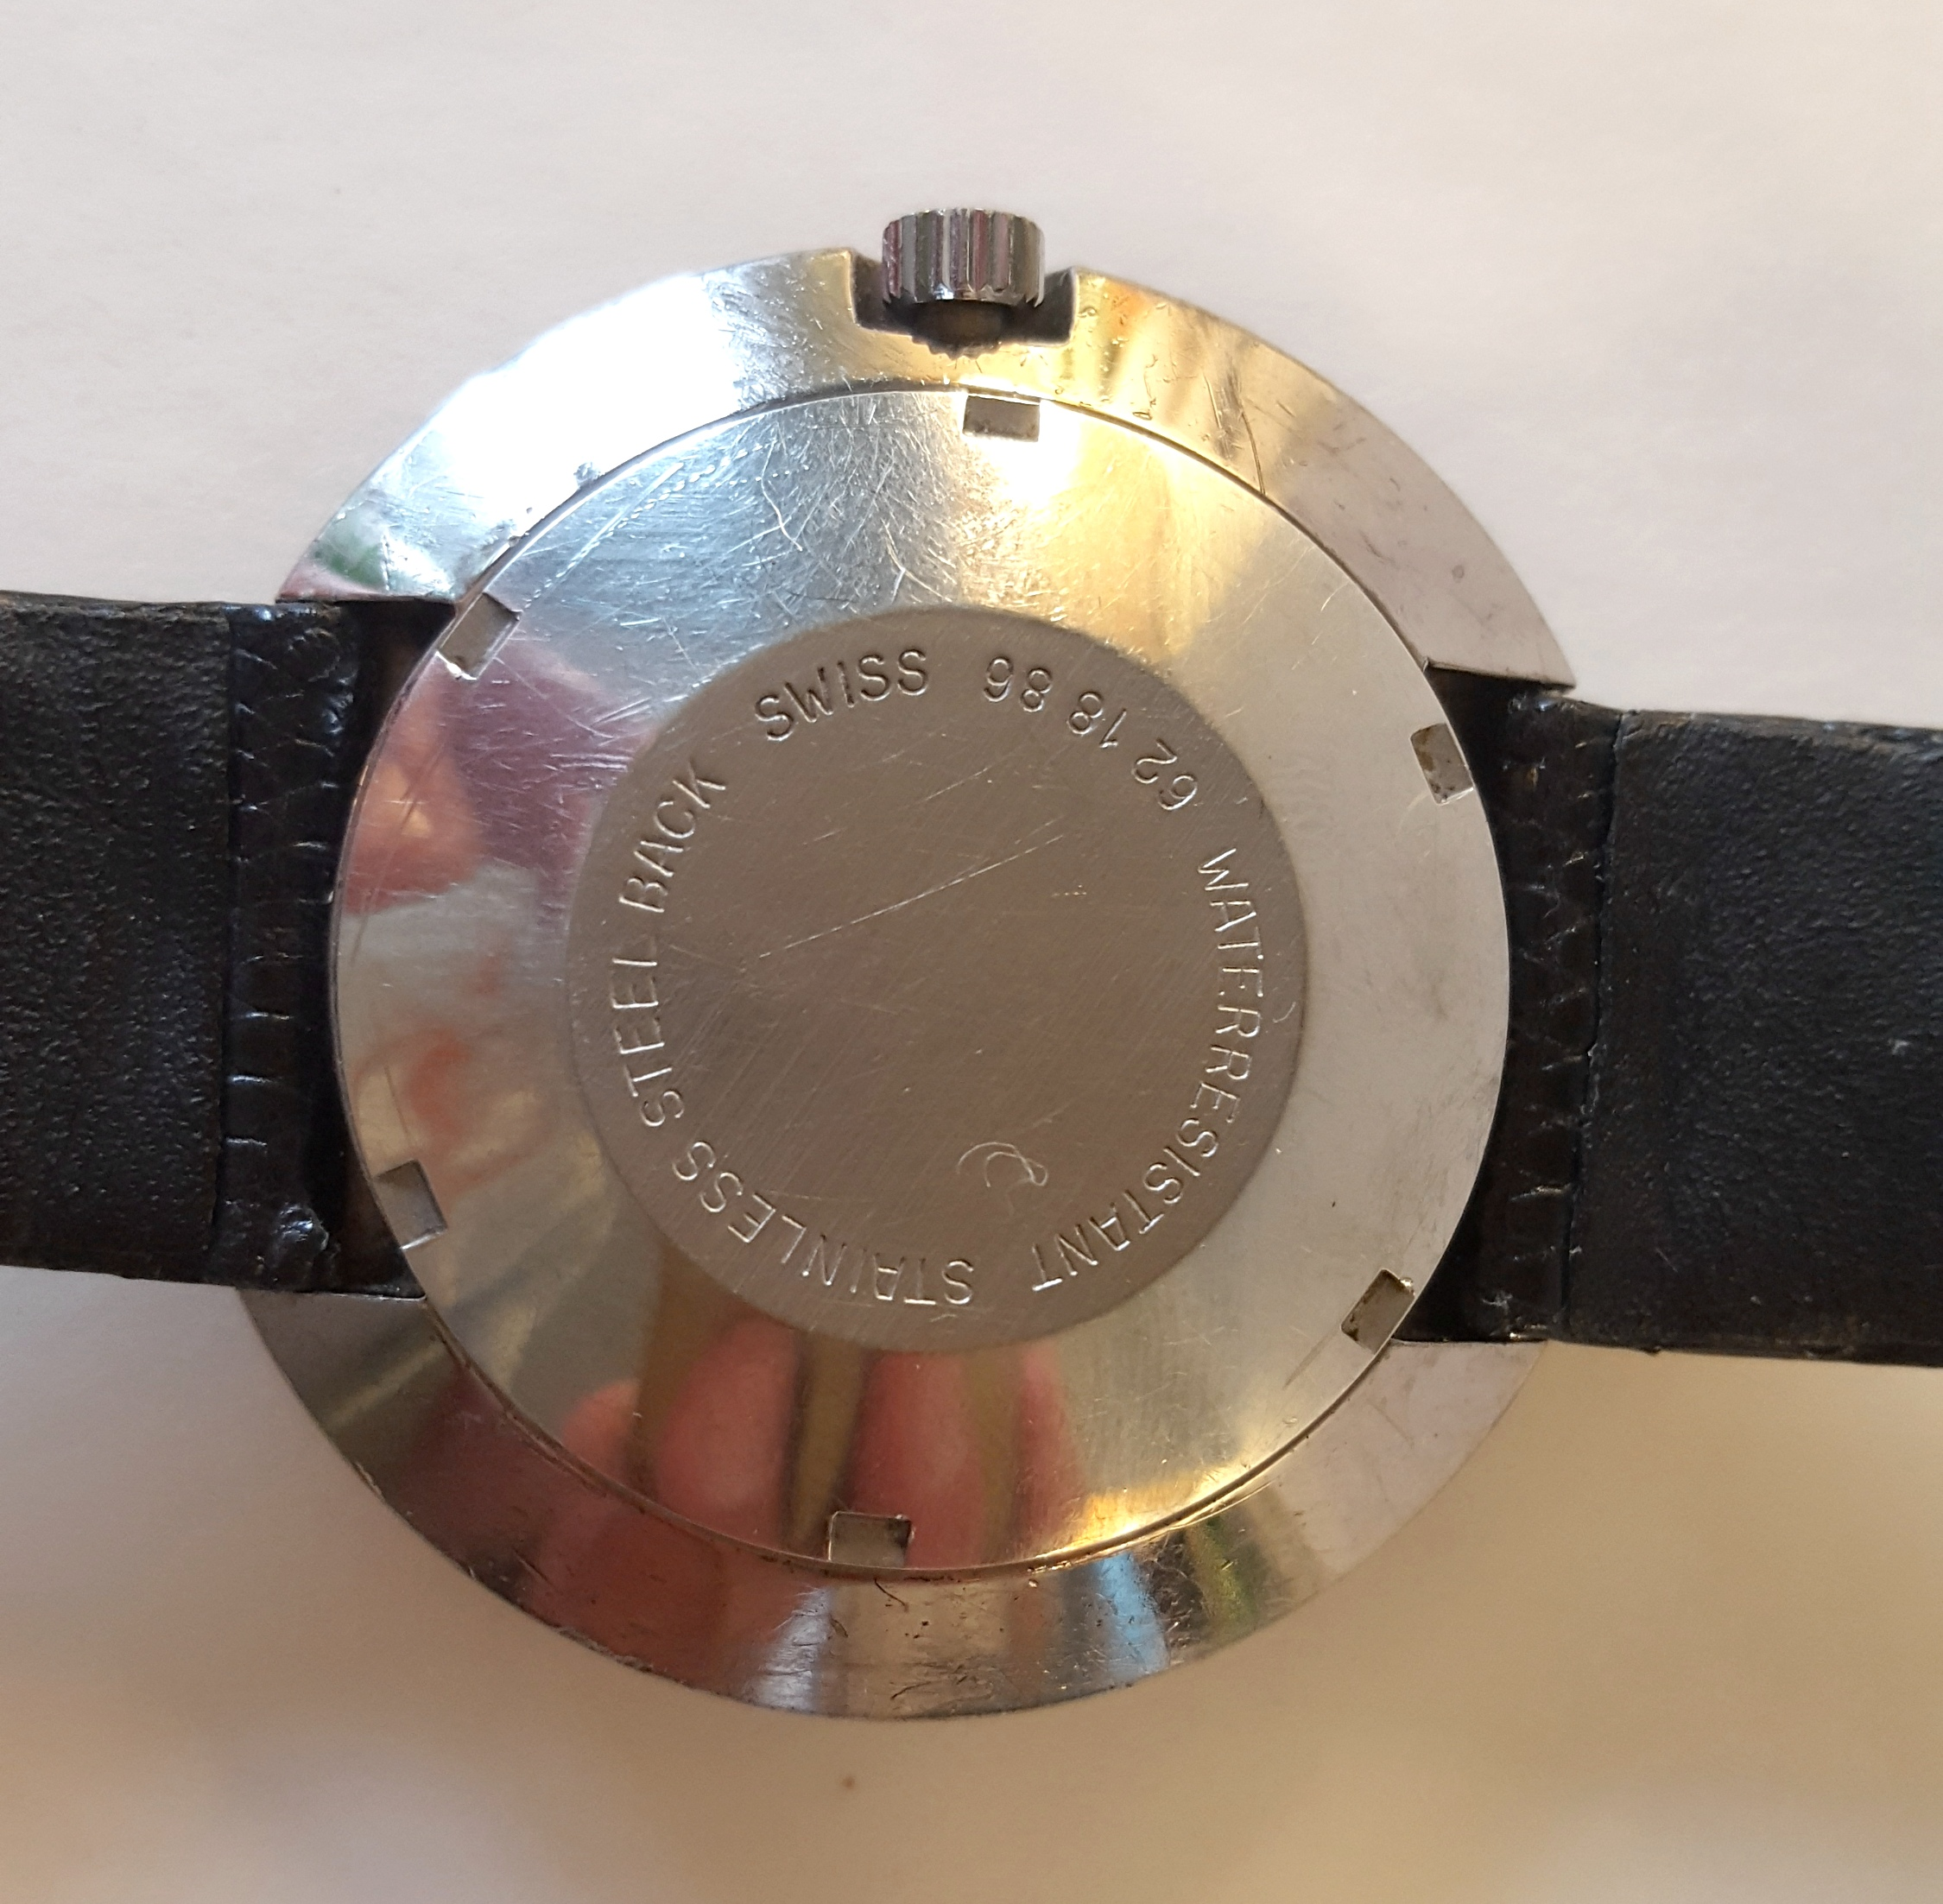 Lot 81 - Vintage Retro Rotary Wrist Watch Stainless Steel Space Helmet Design Fully Automatic Working